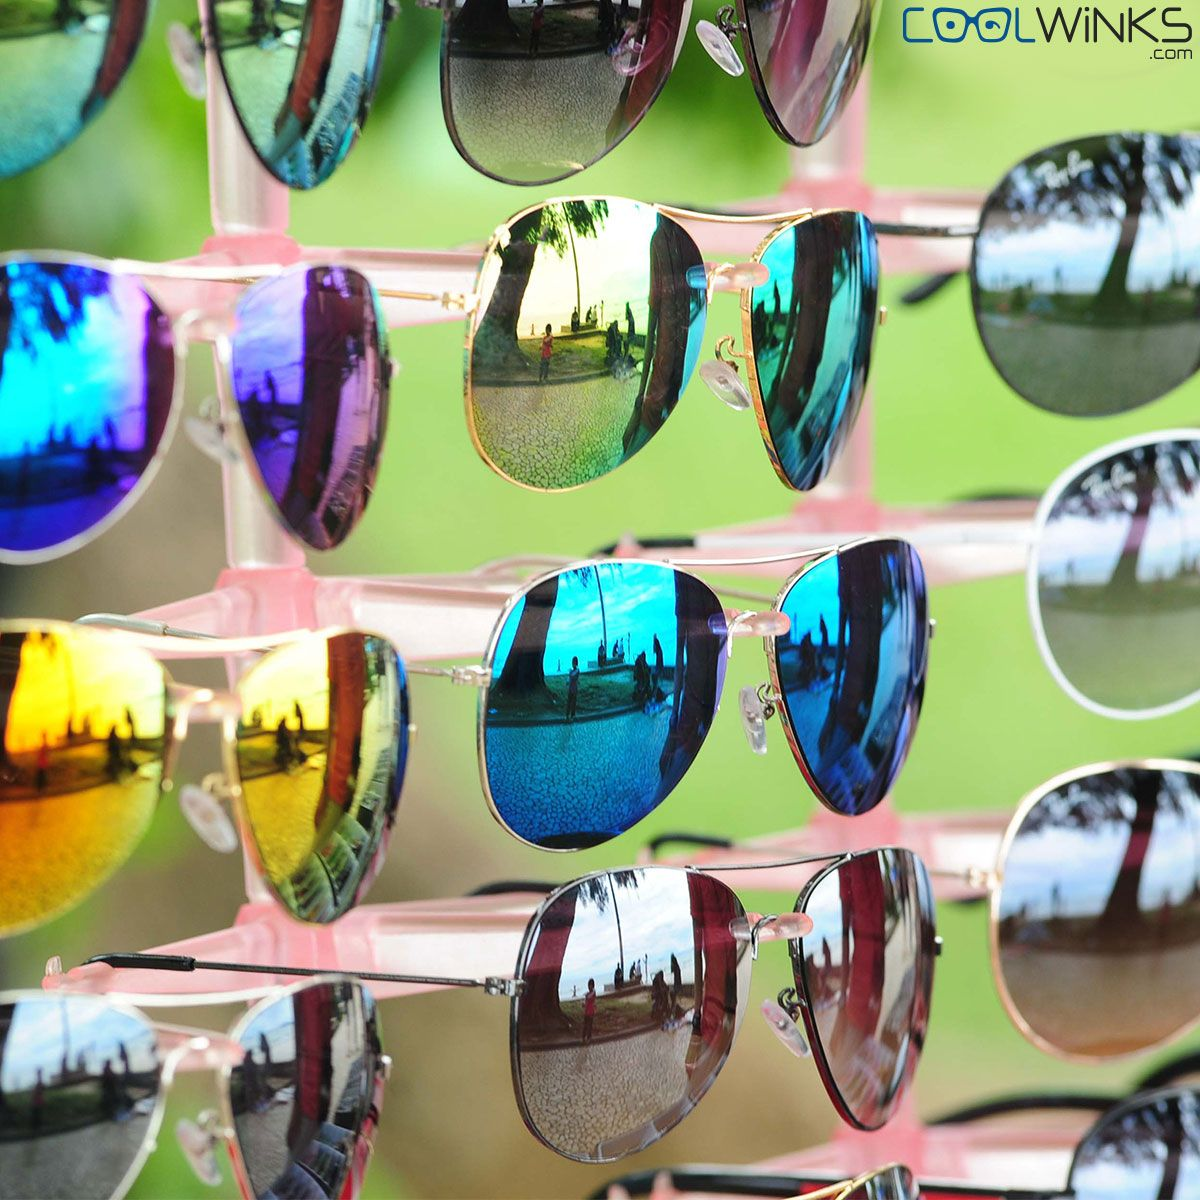 61de2ae2bd7 UPTO 85% OFF on Branded Sunglasses  Coolwinks Summer Sale! New Collection  starts   Rs.127. Limited Period Offer. Hurry! Buy Now.